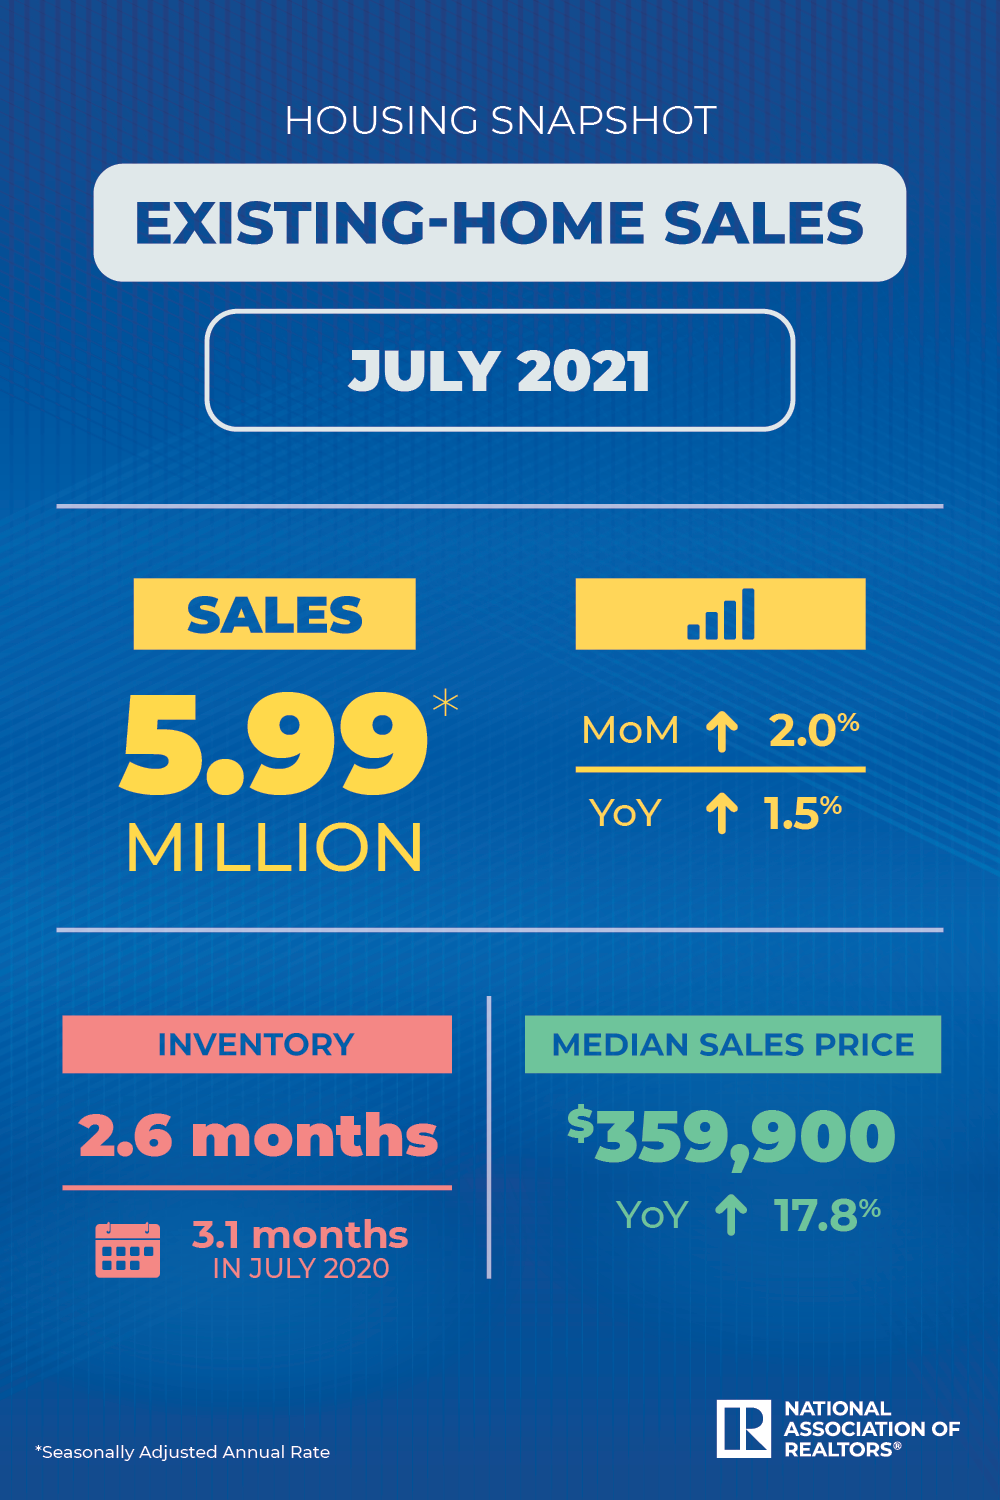 July 2021 Existing-Home Sales Snapshot